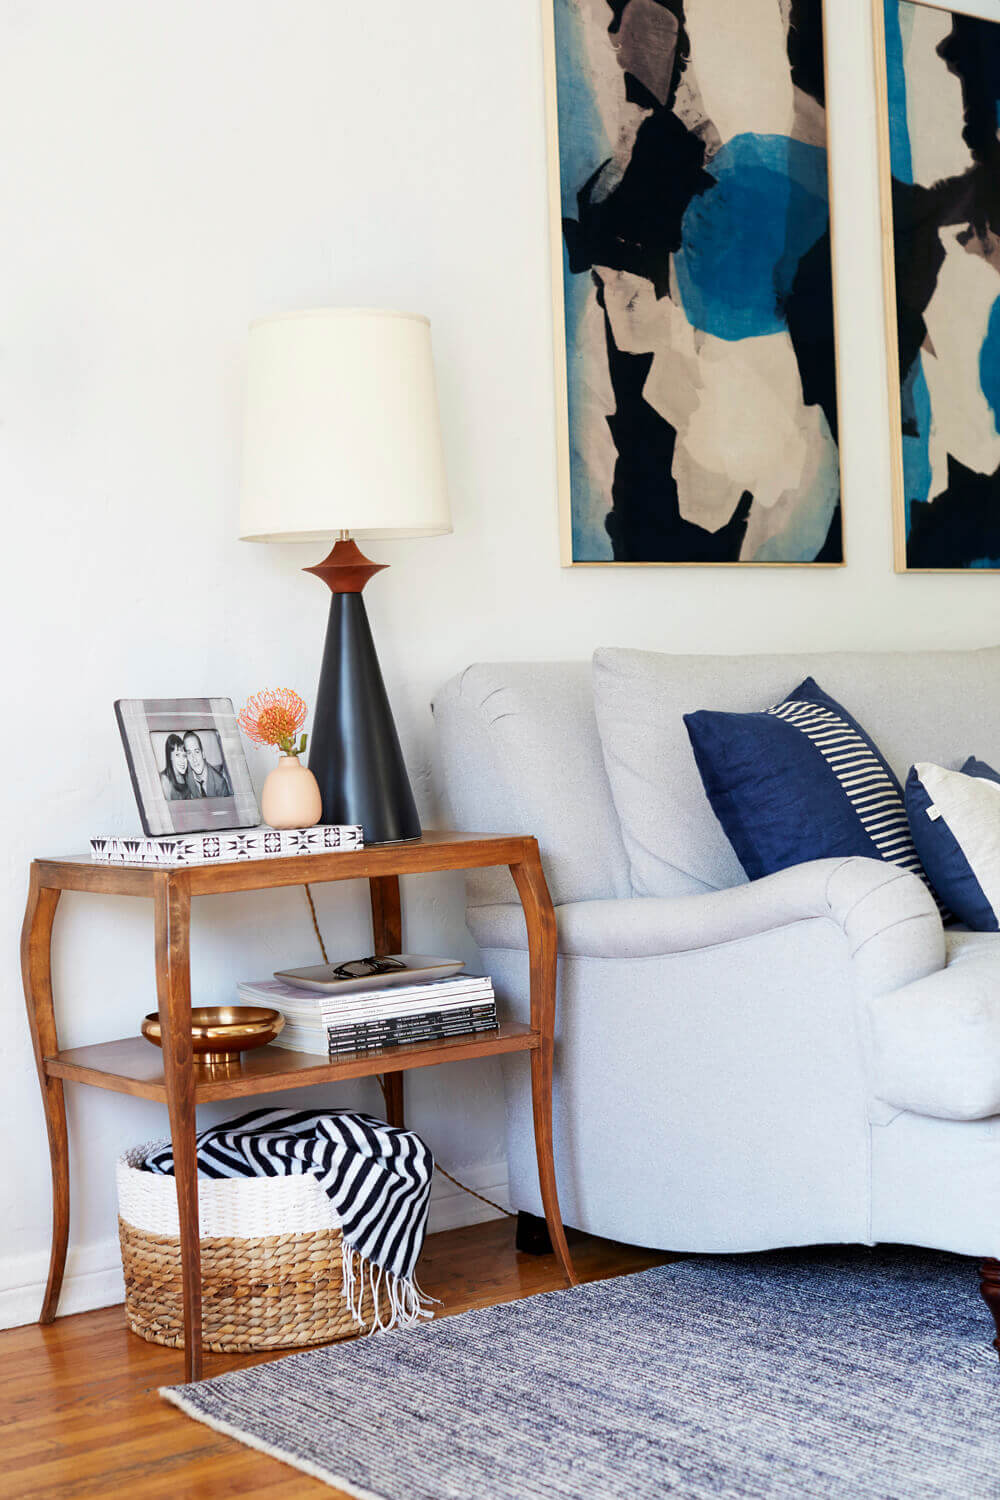 accent tables under emily henderson styling bedside table small living room snack ikea ceramic outdoor cordless lamps pottery barn easy diy coffee adjustable floor lamp garage